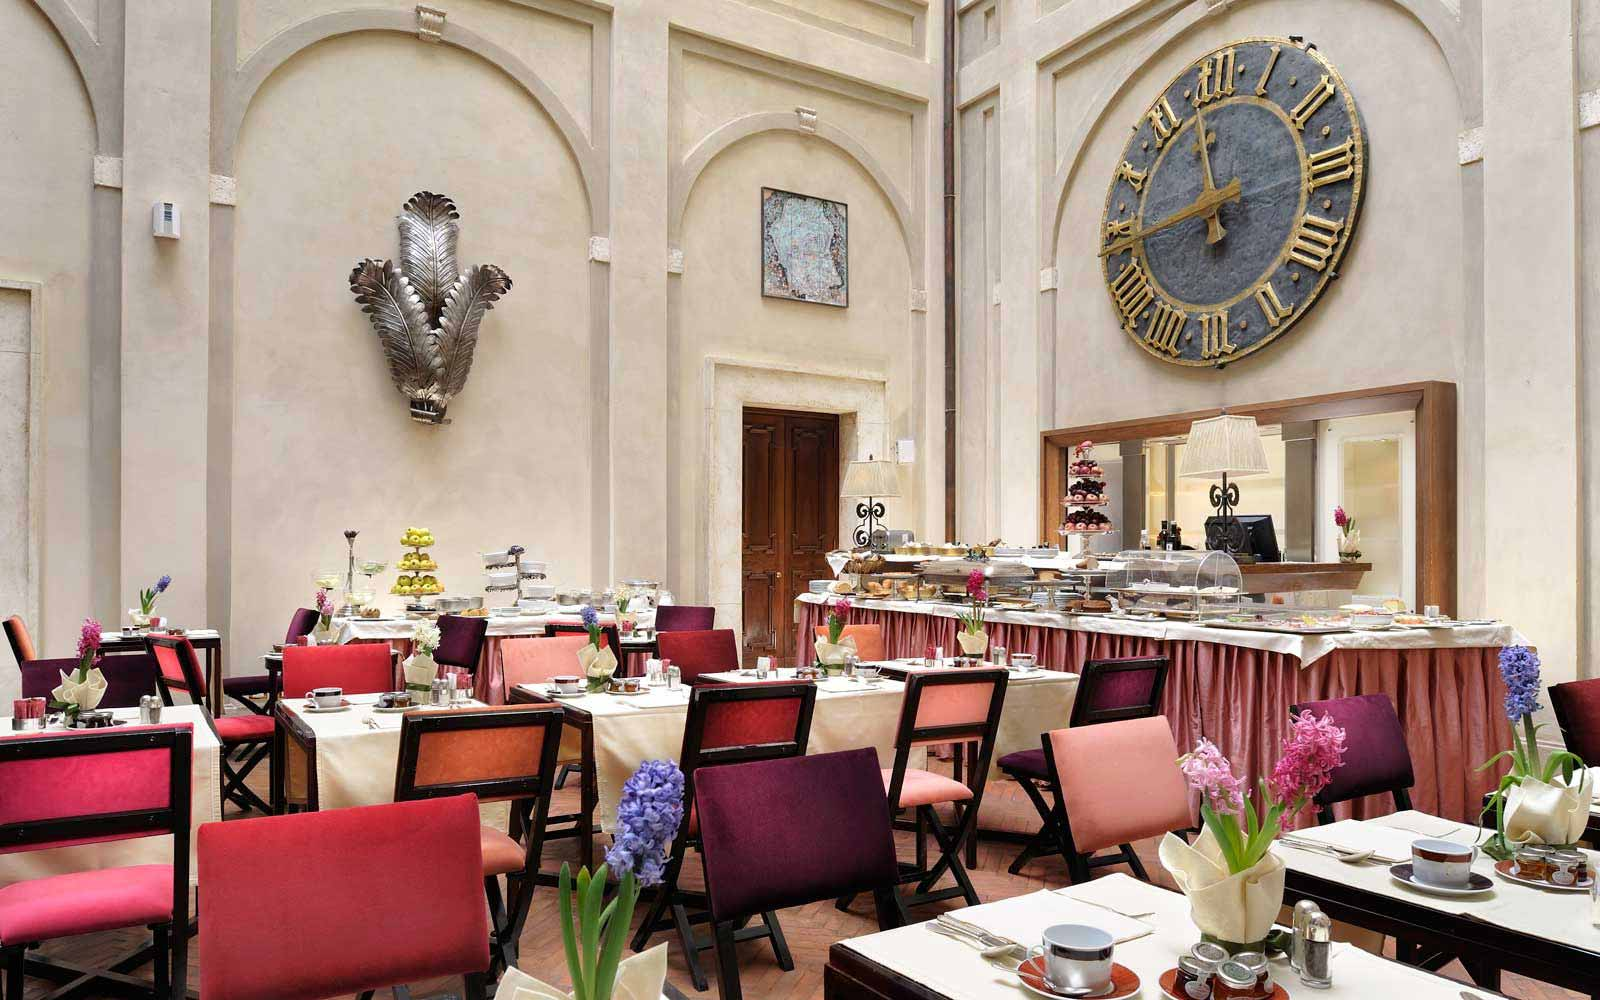 Breakfast room at the Grand Hotel Continental